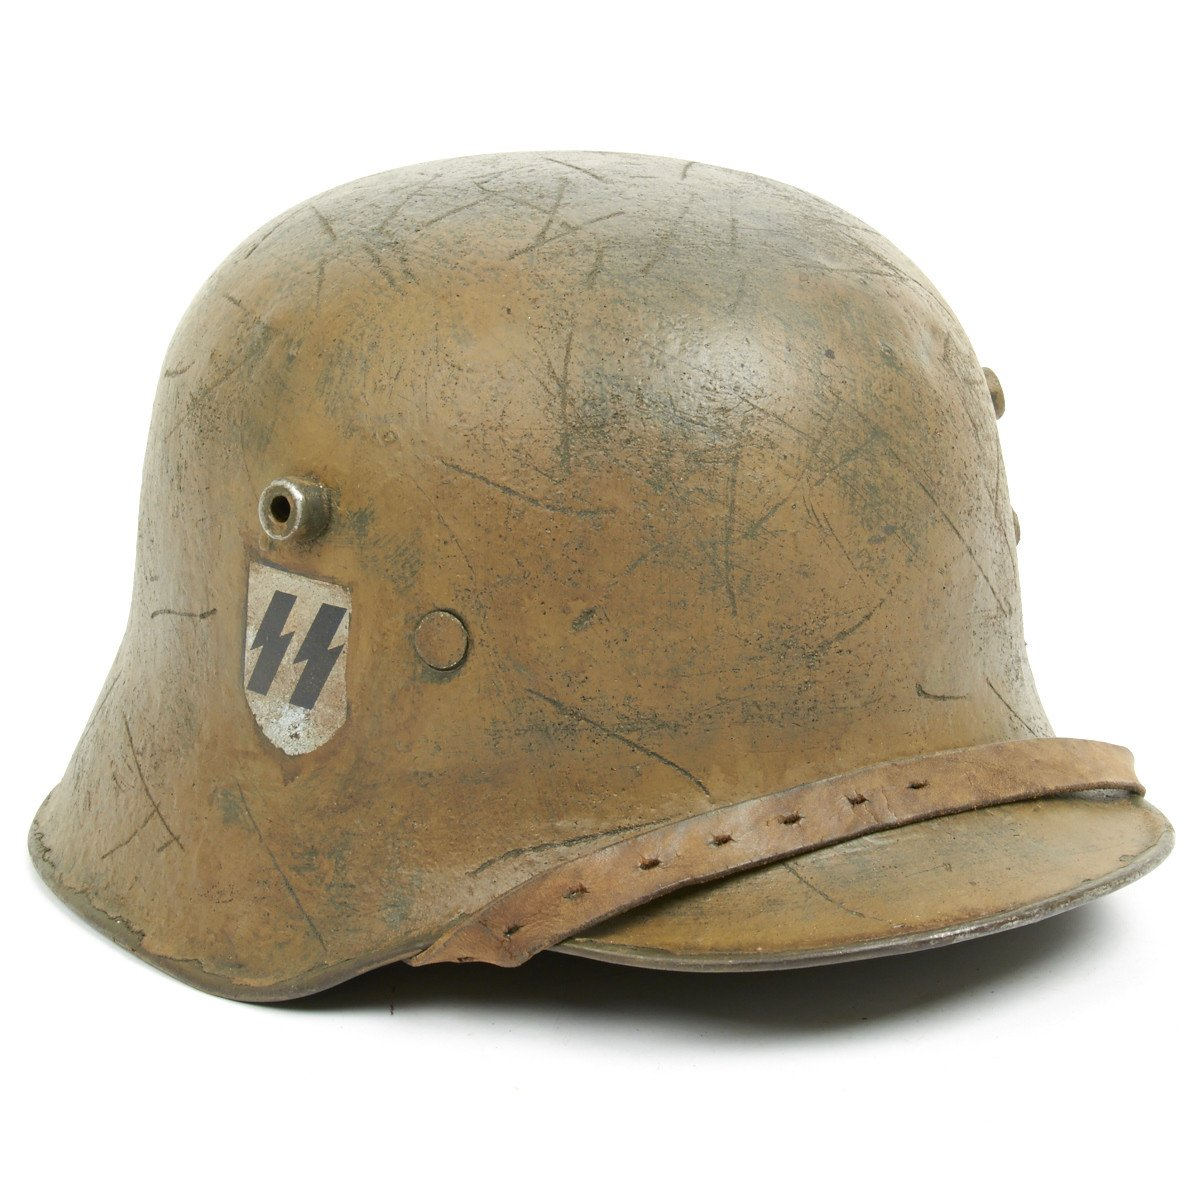 Original German WWI M18 Refurbished WW2 Transitional SS Helmet with